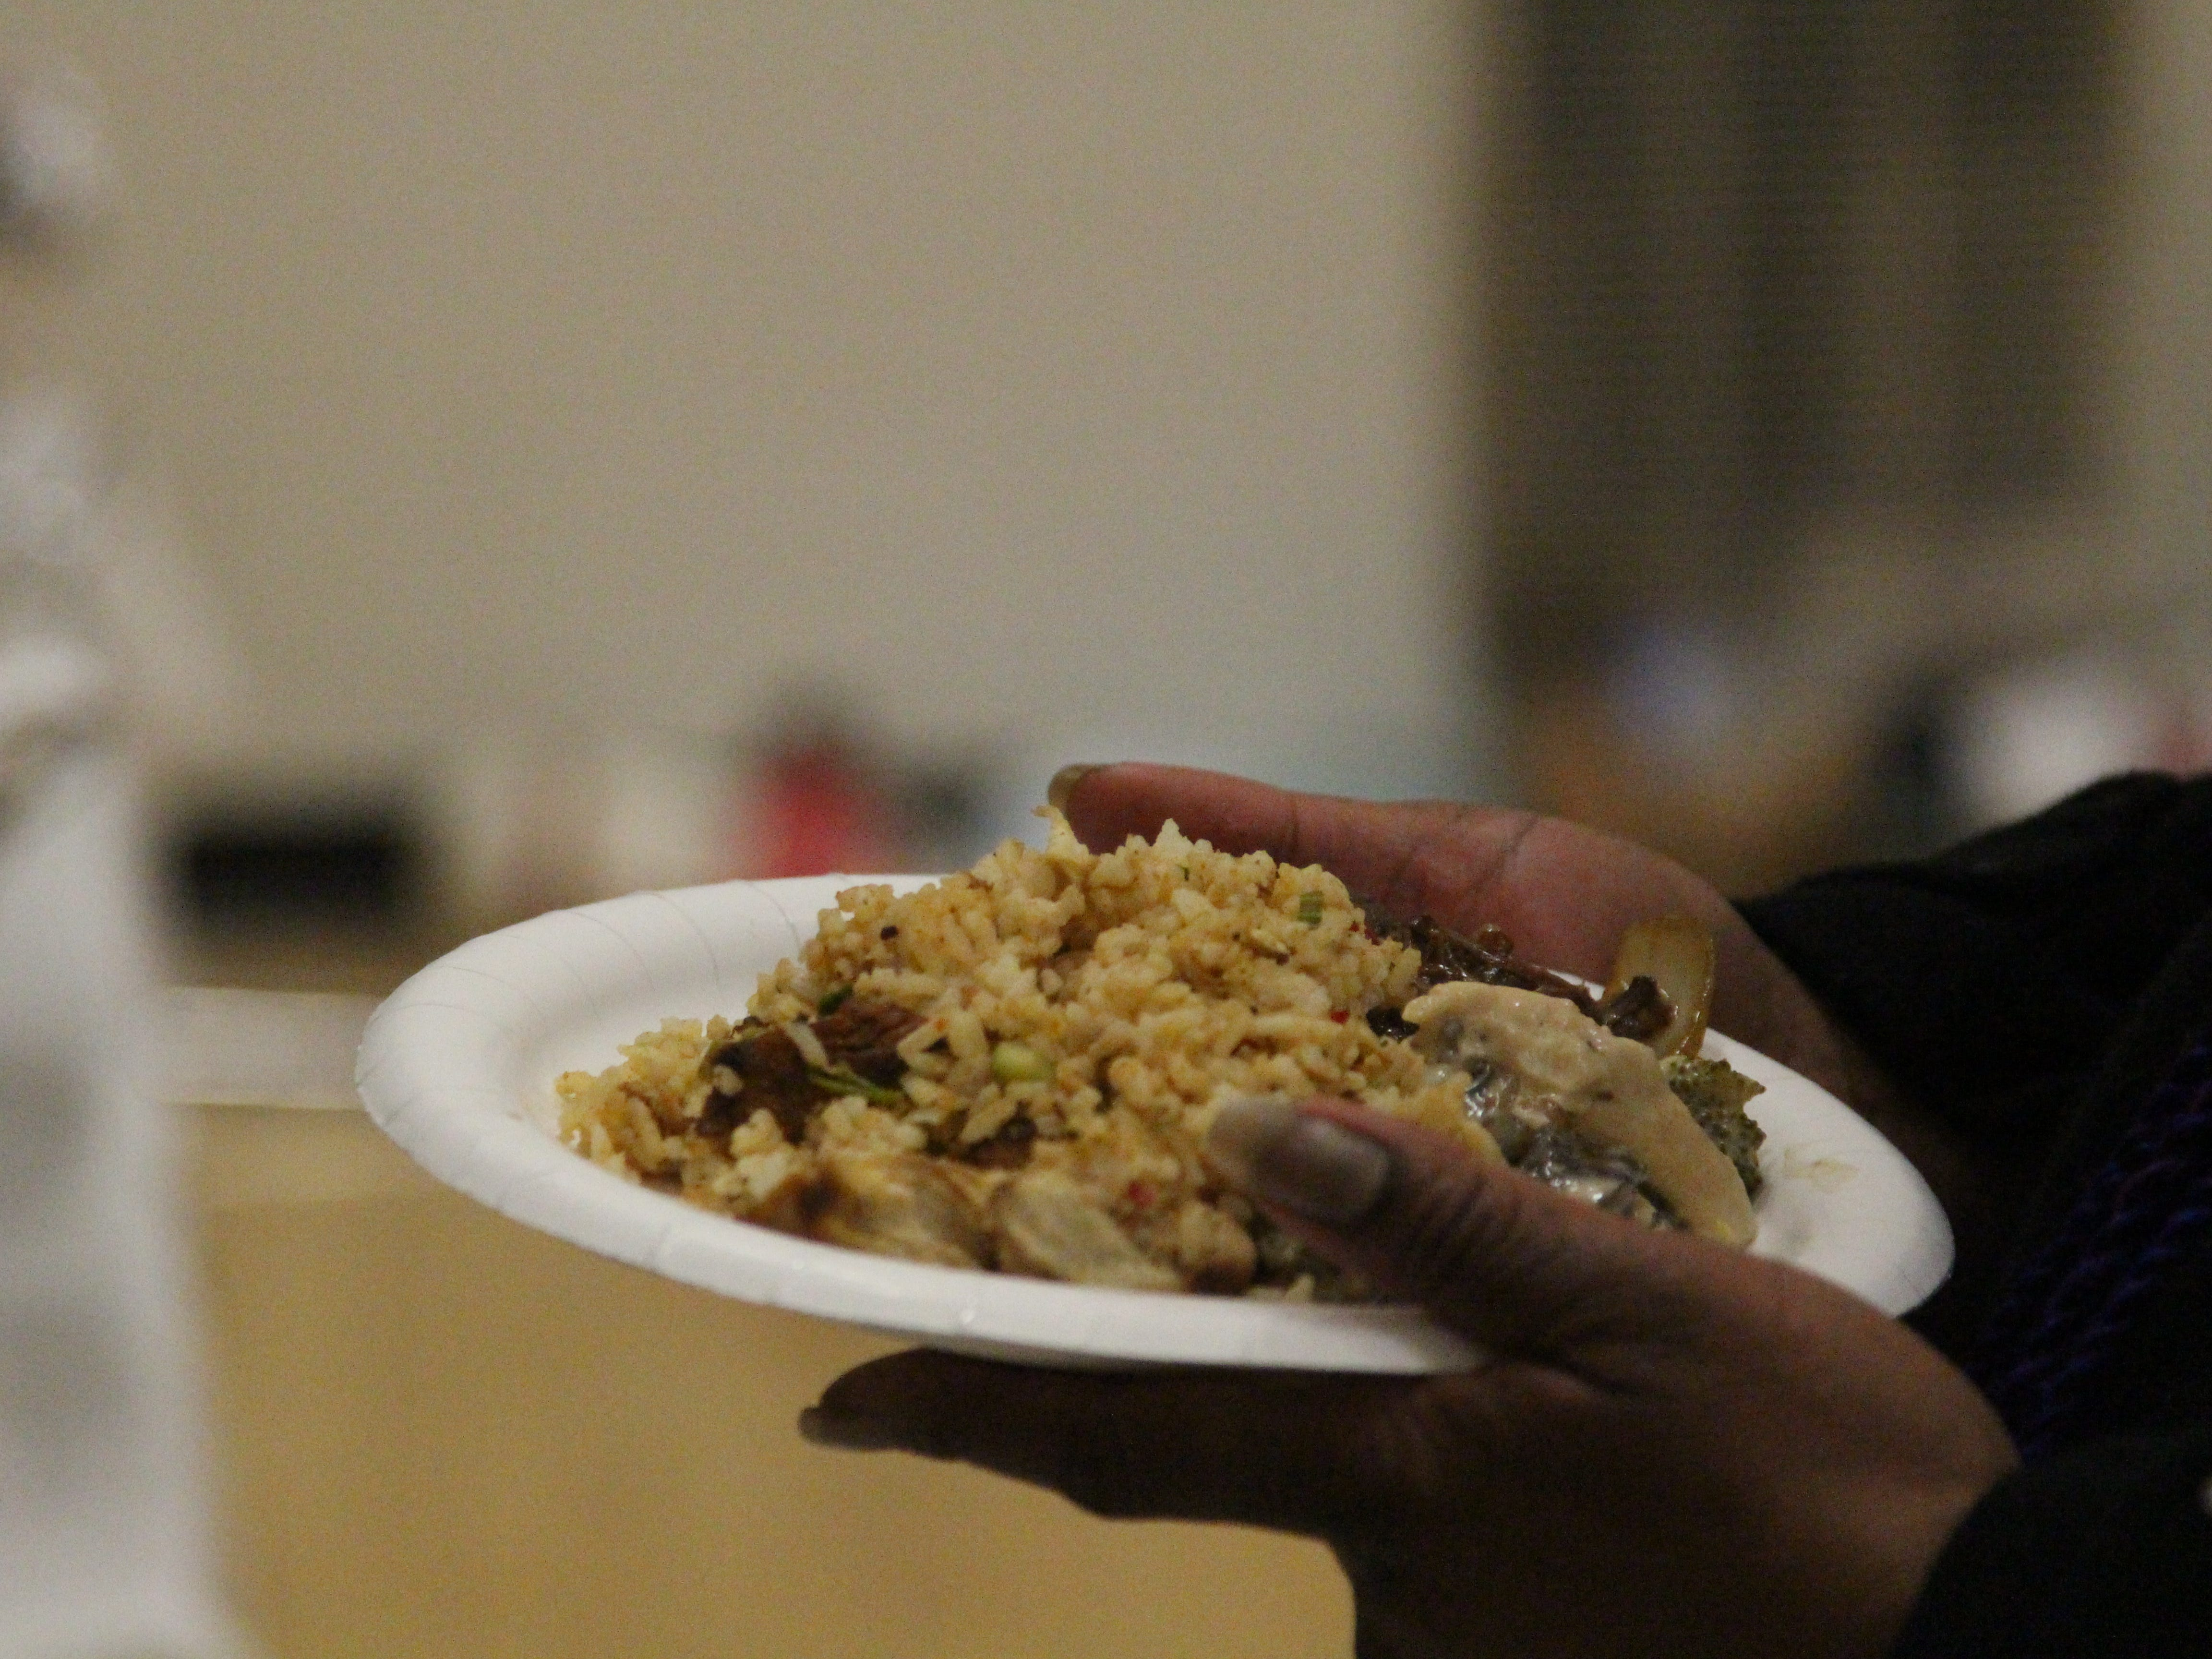 The Ohio State University at Marion served food from several countries and regions, including Latin America and northern Africa, Thursday at its 12th Annual International Festival.